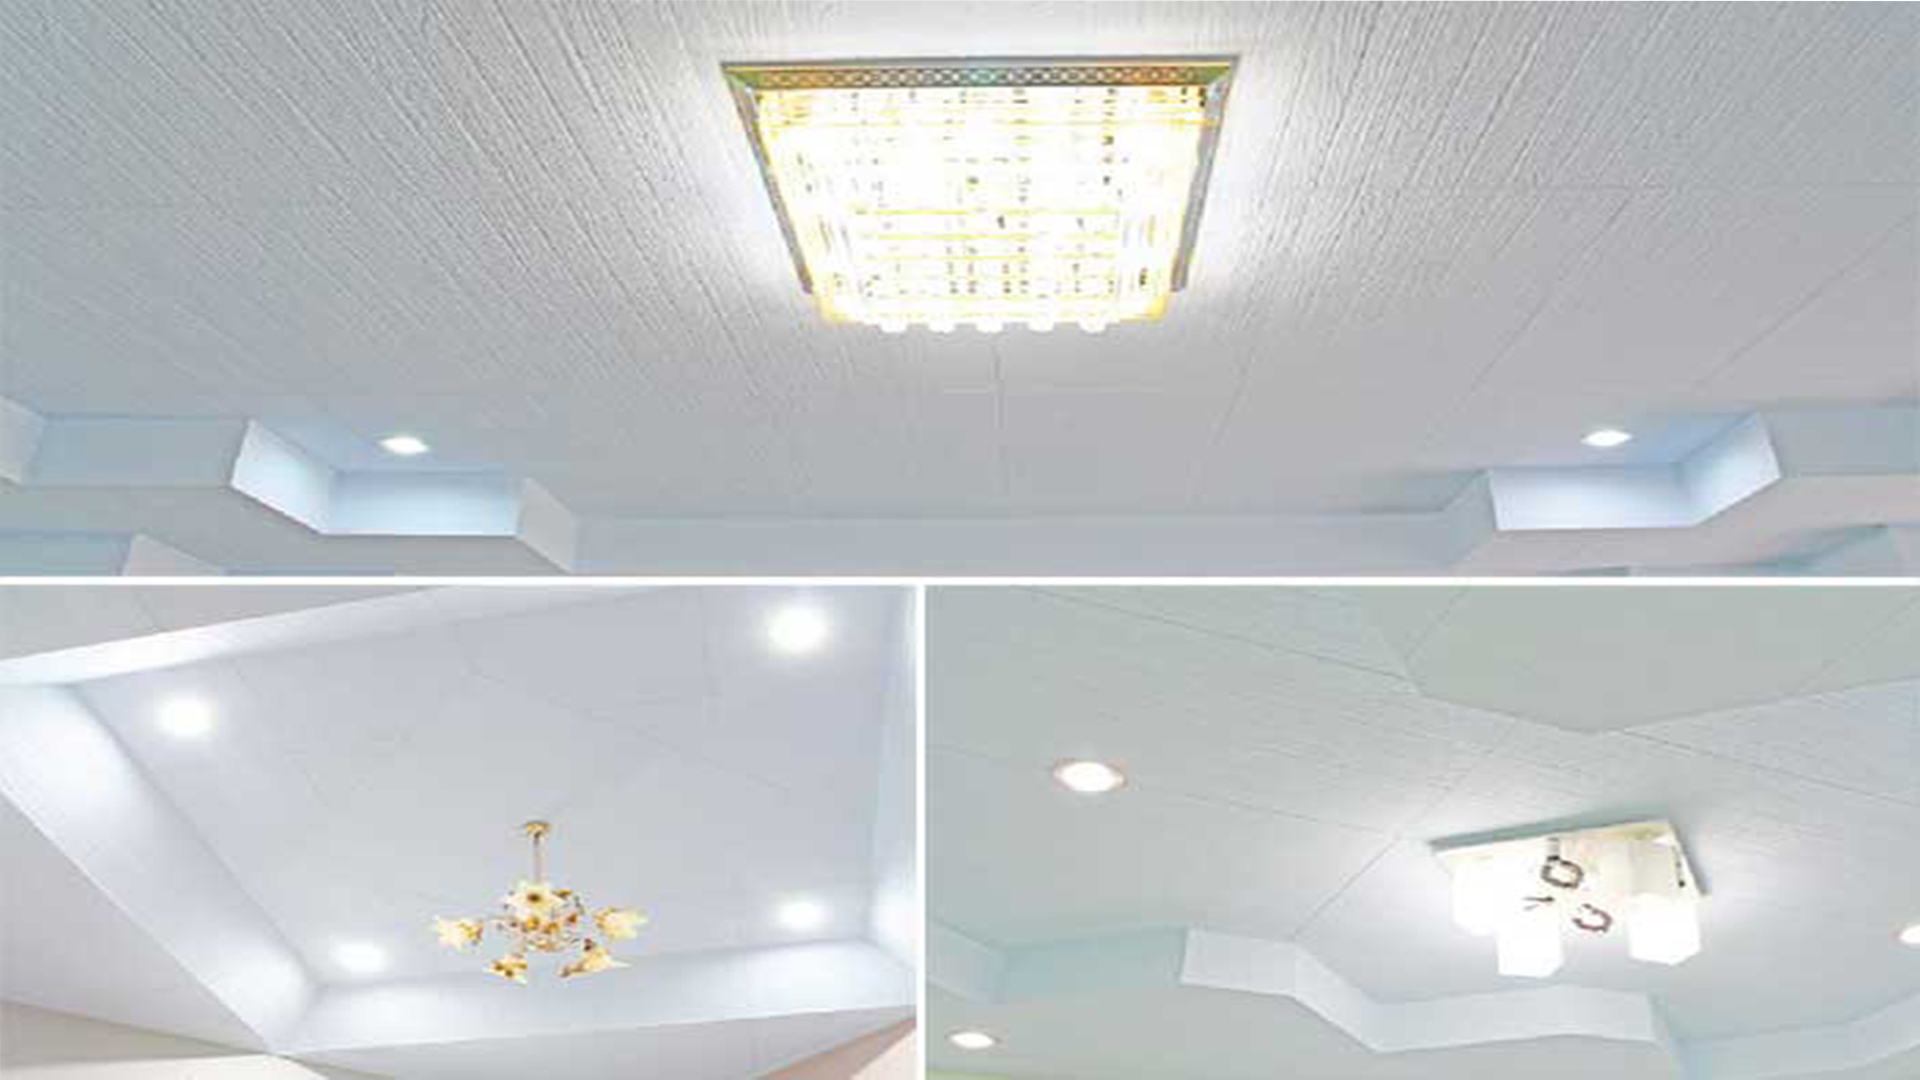 Changing for a Better Ceiling with fiber cement board